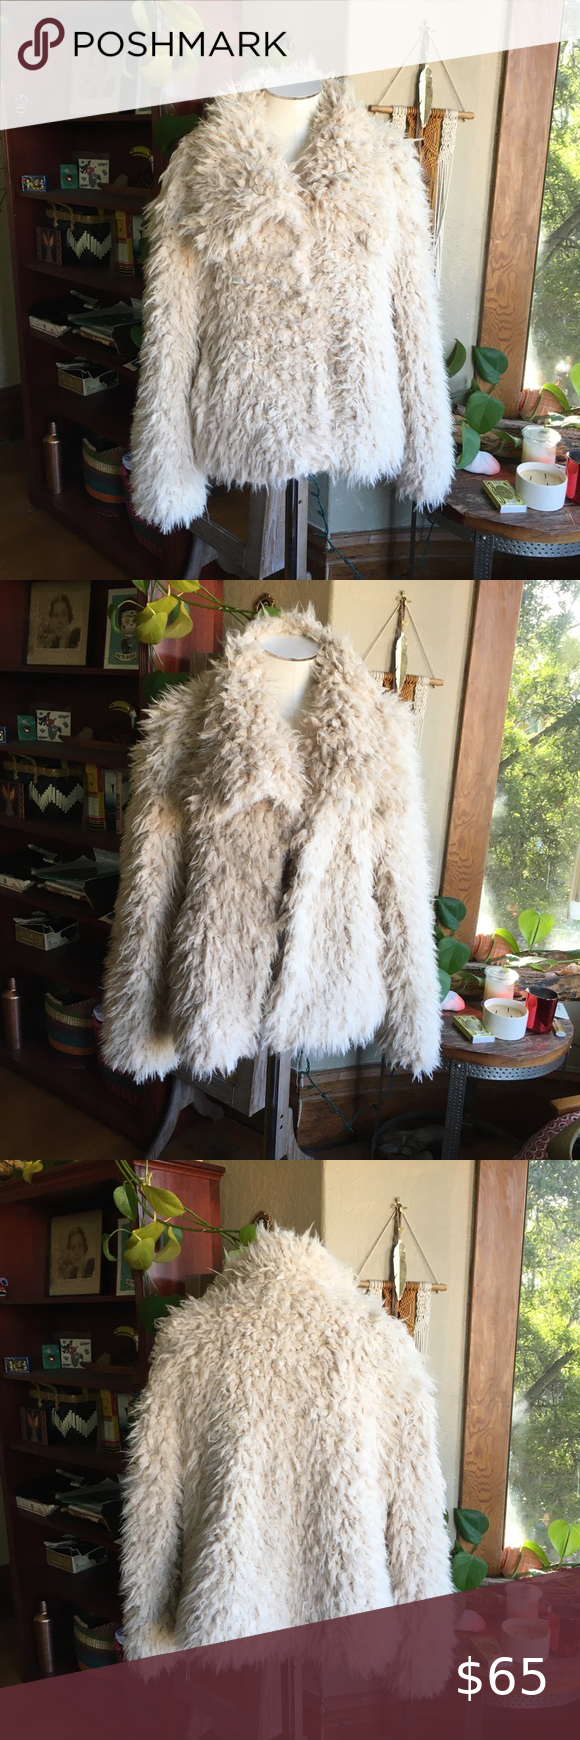 Lucky Brand Cream Color Faux Fur Jacket in 2020 Faux fur